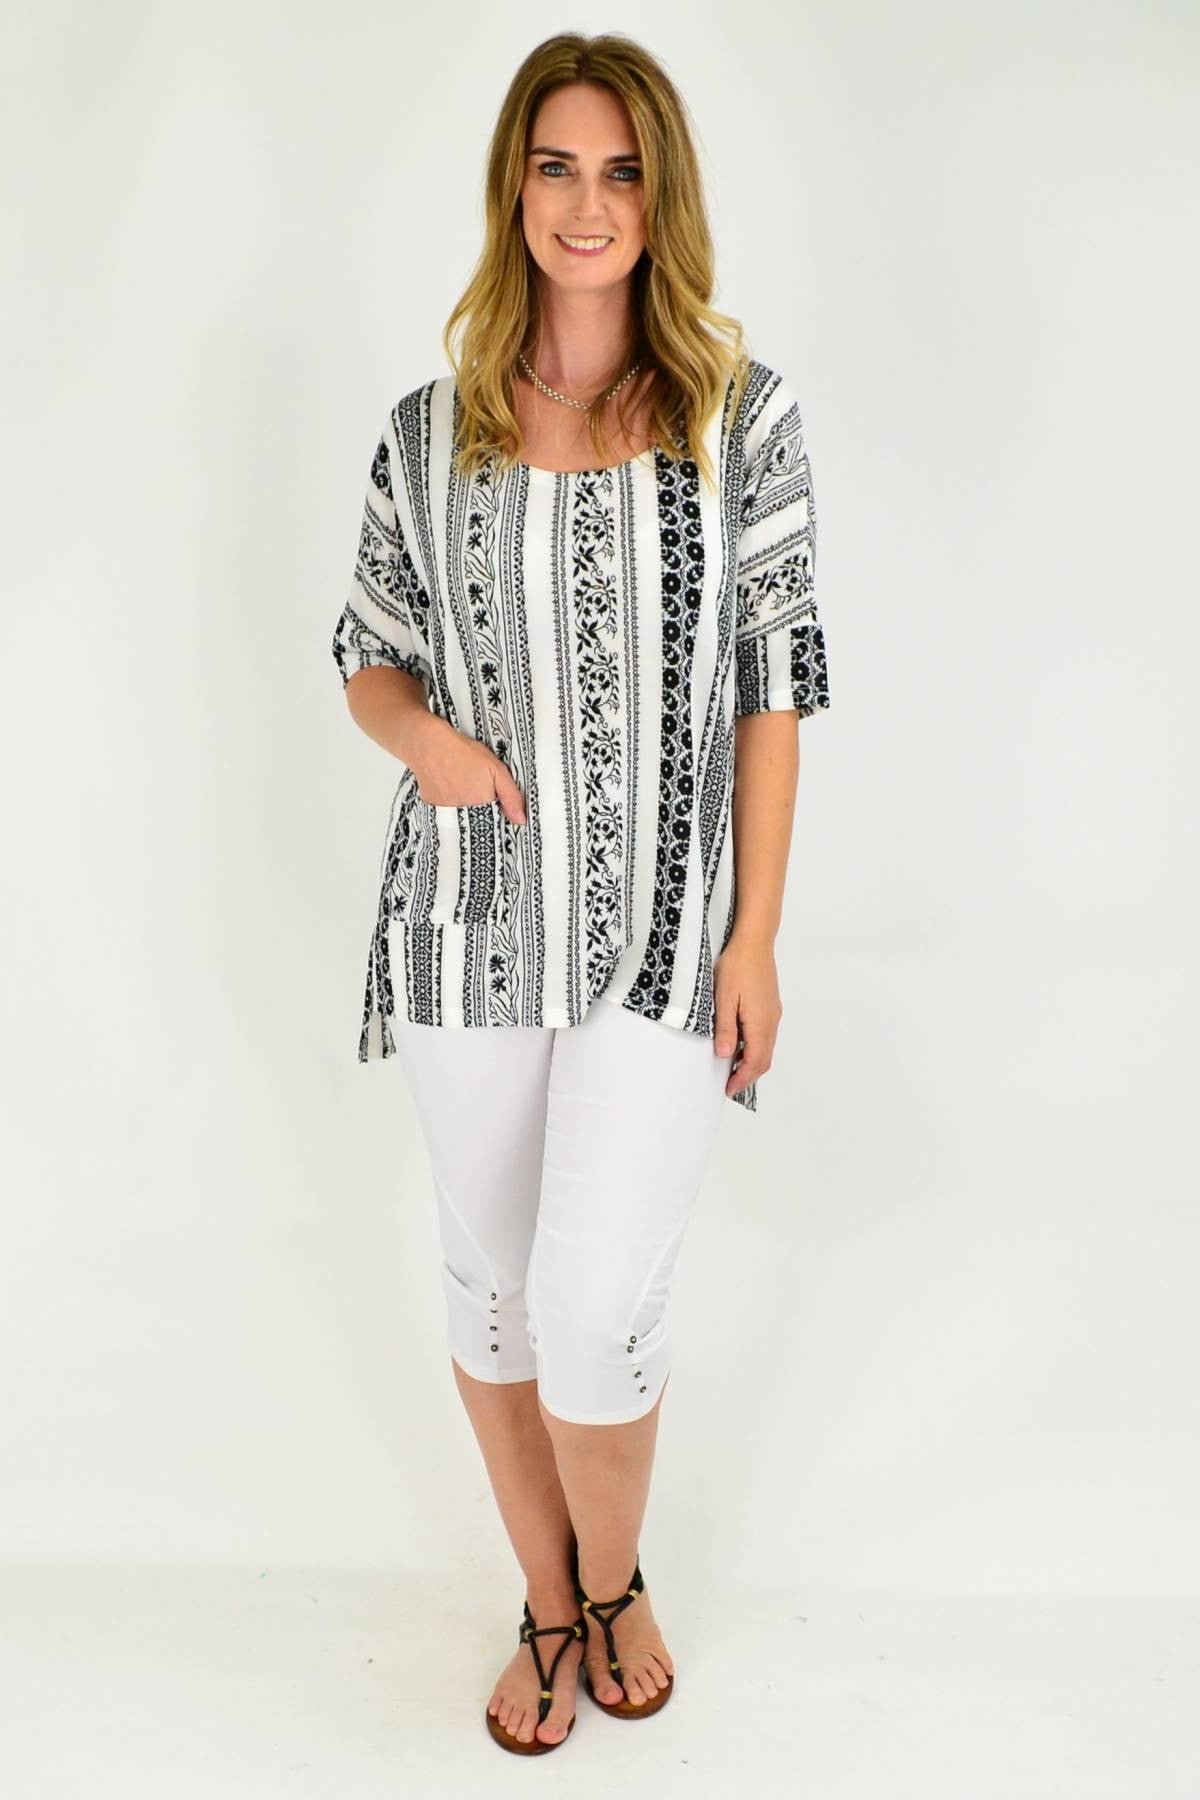 A Nice Black and White Relaxed Fit Tunic Top | I Love Tunics | Tunic Tops | Tunic | Tunic Dresses  | womens clothing online